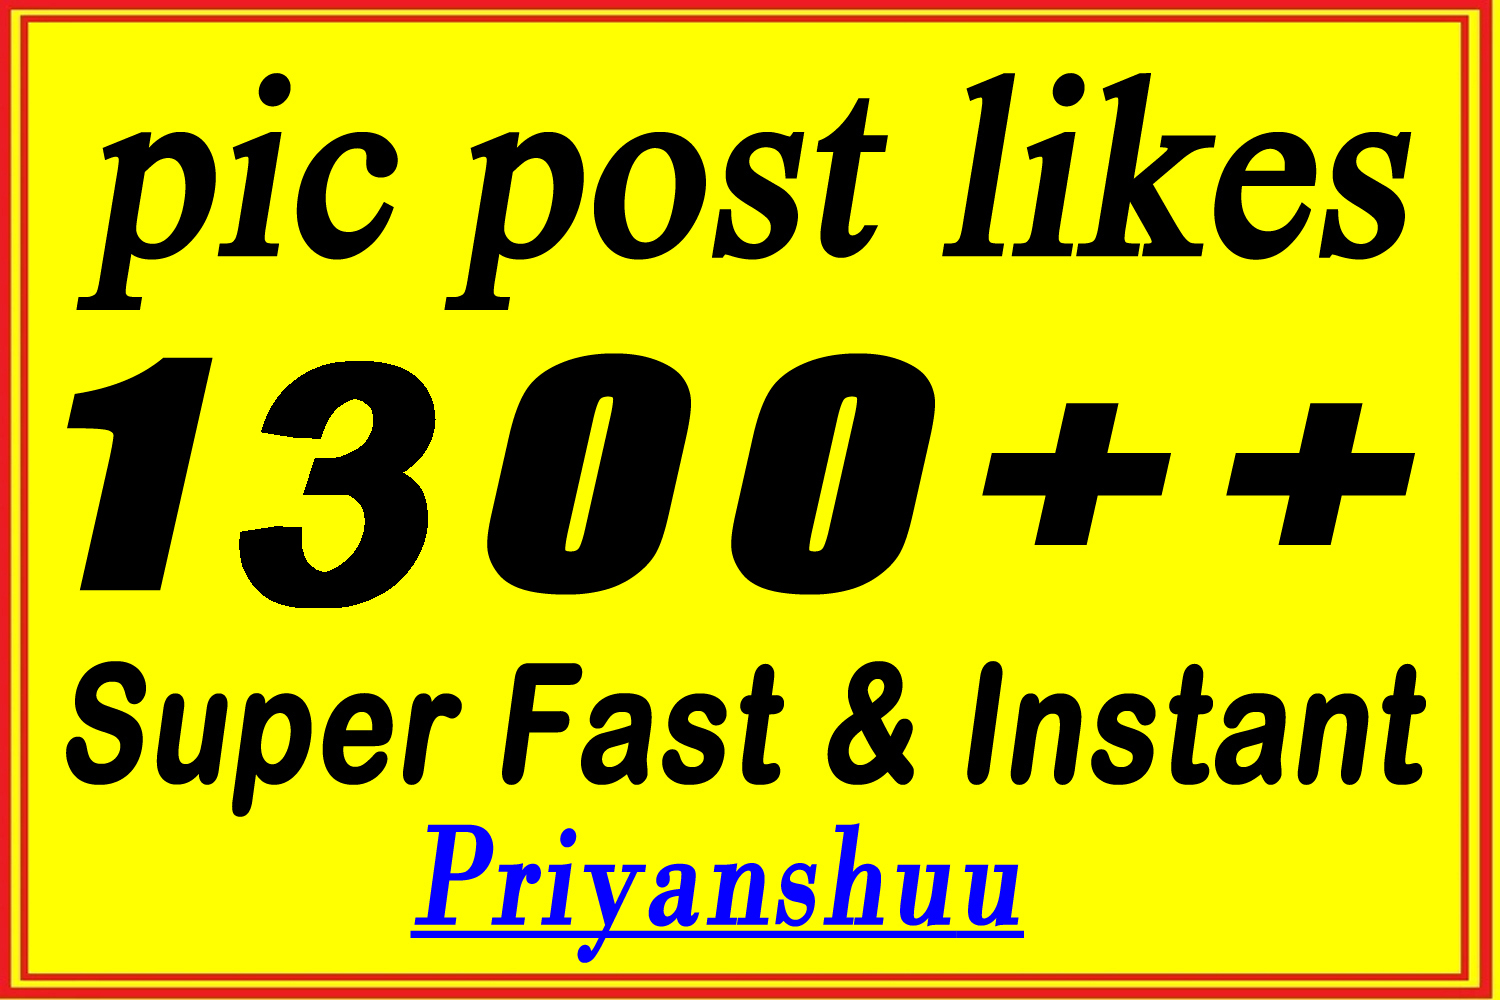 instant 1200-1300 picture post promotion marketing in 4 hours